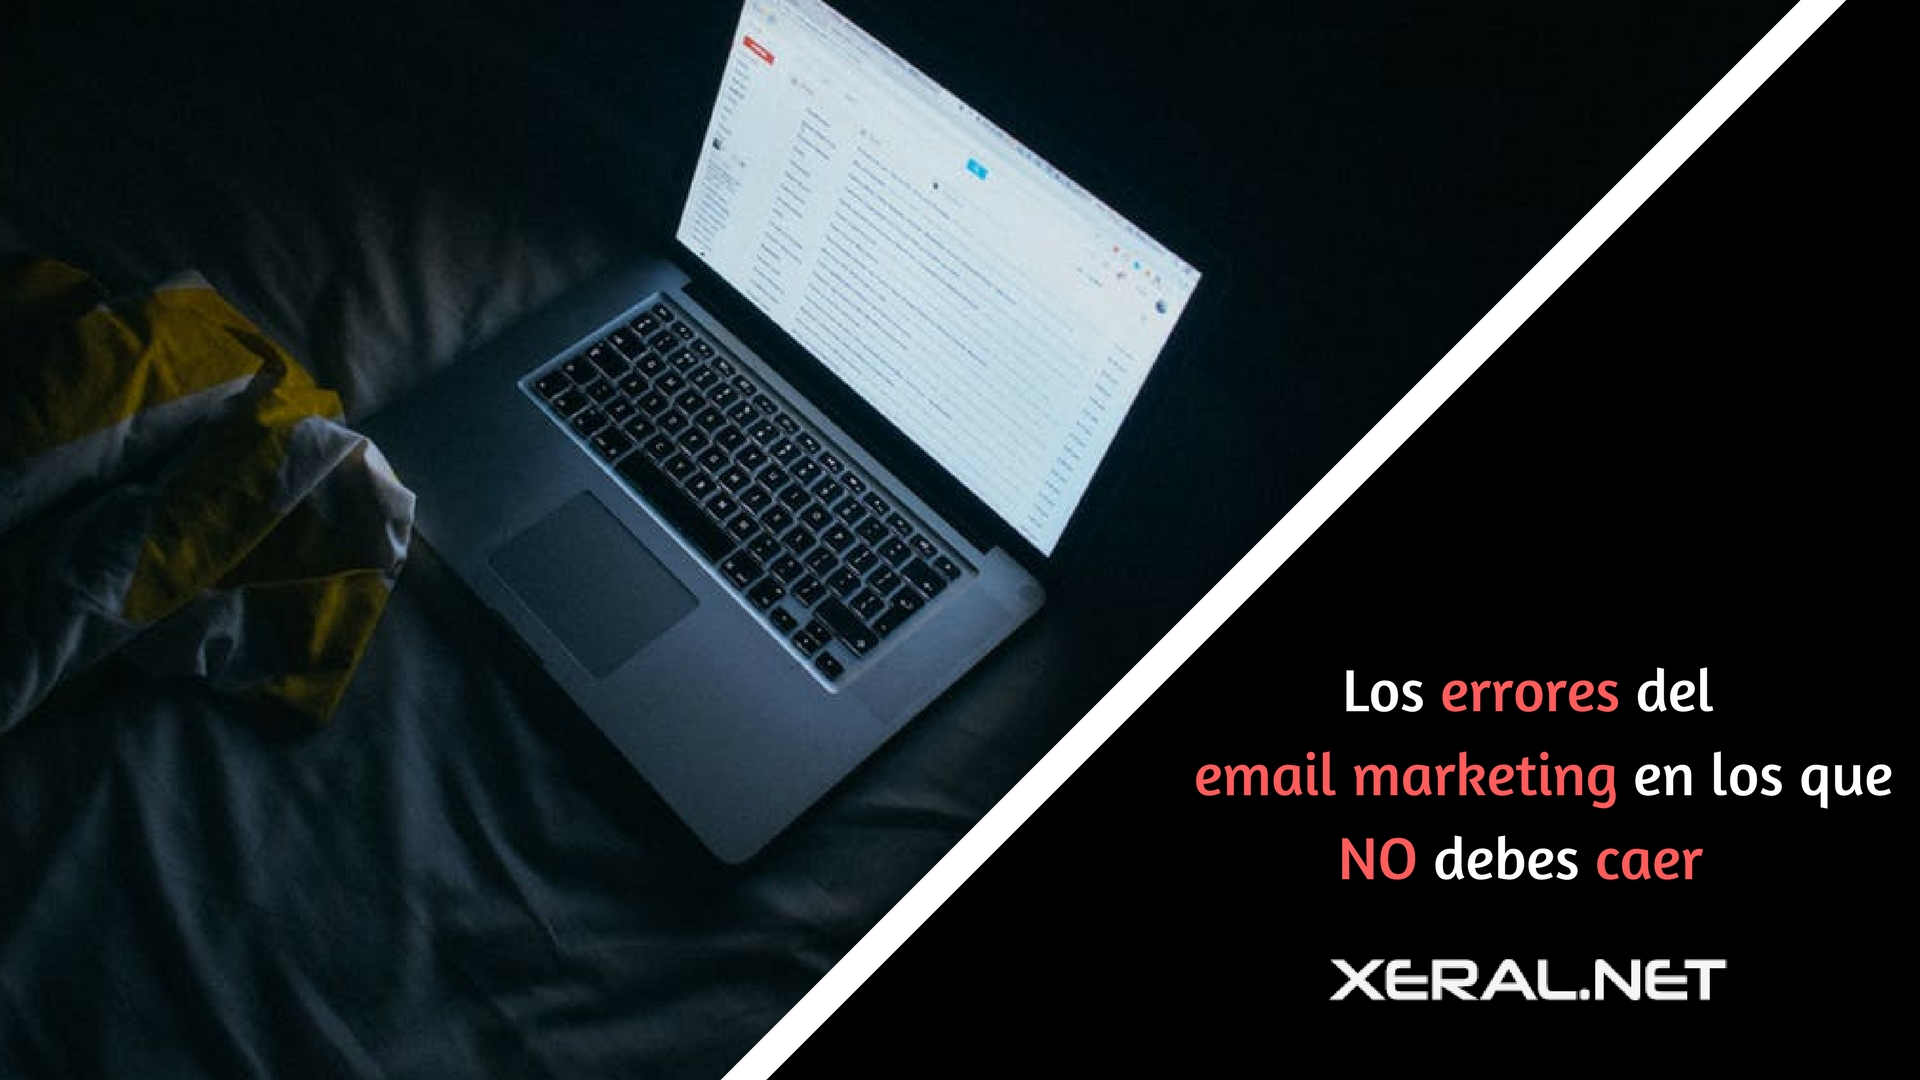 Los errores del email marketing en los que NO debes caer 1920